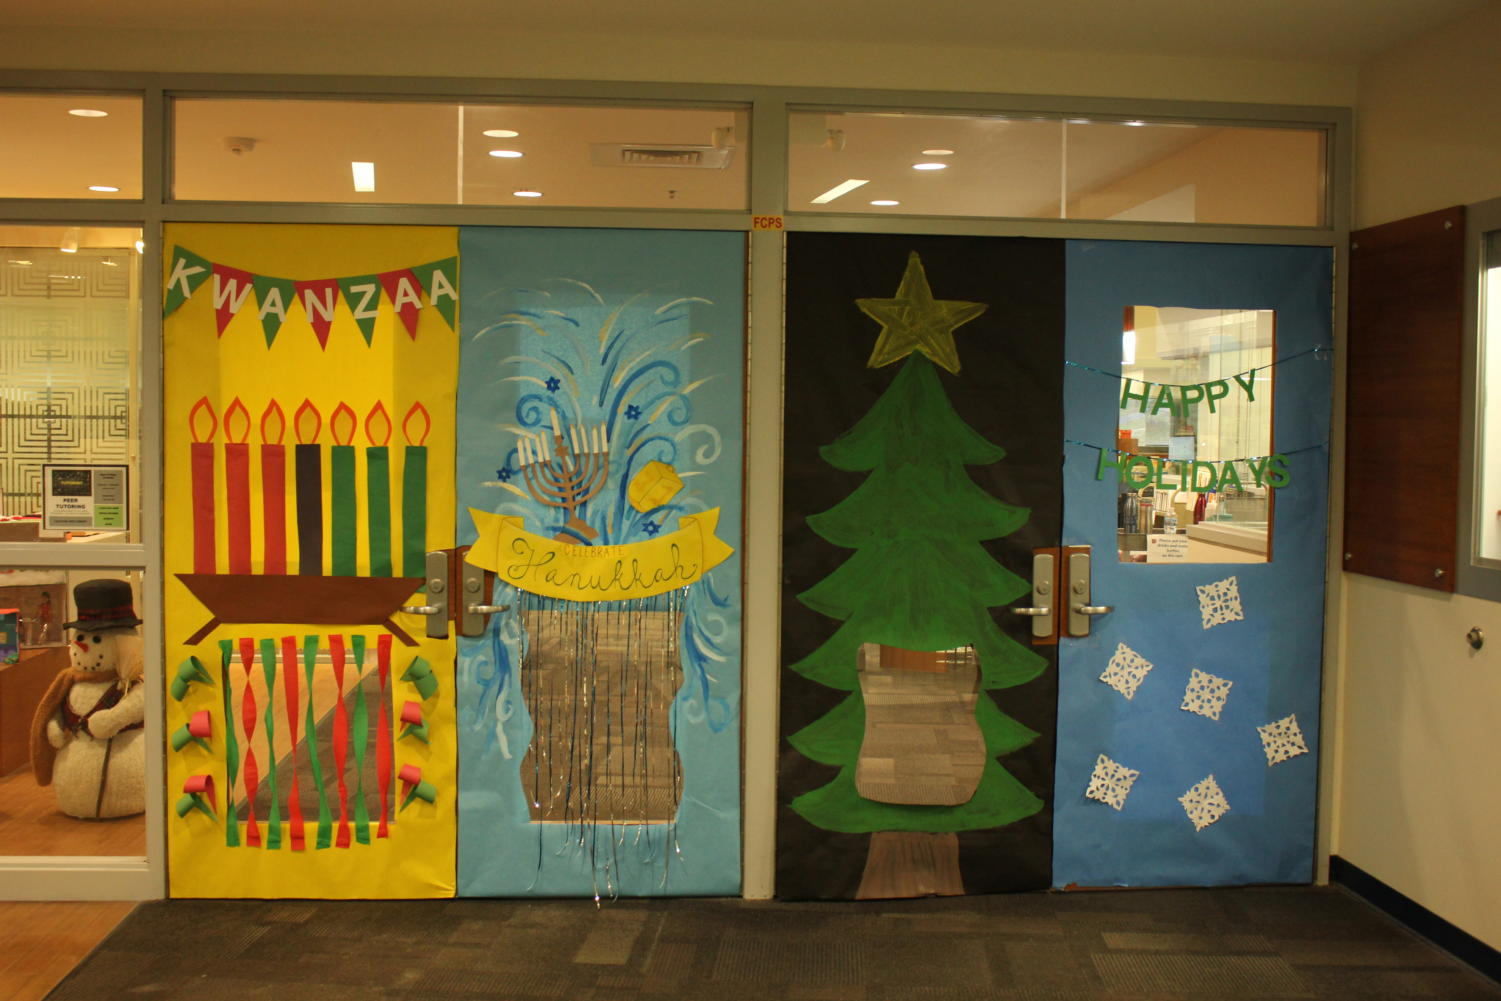 The library doors decorated for winter holidays.